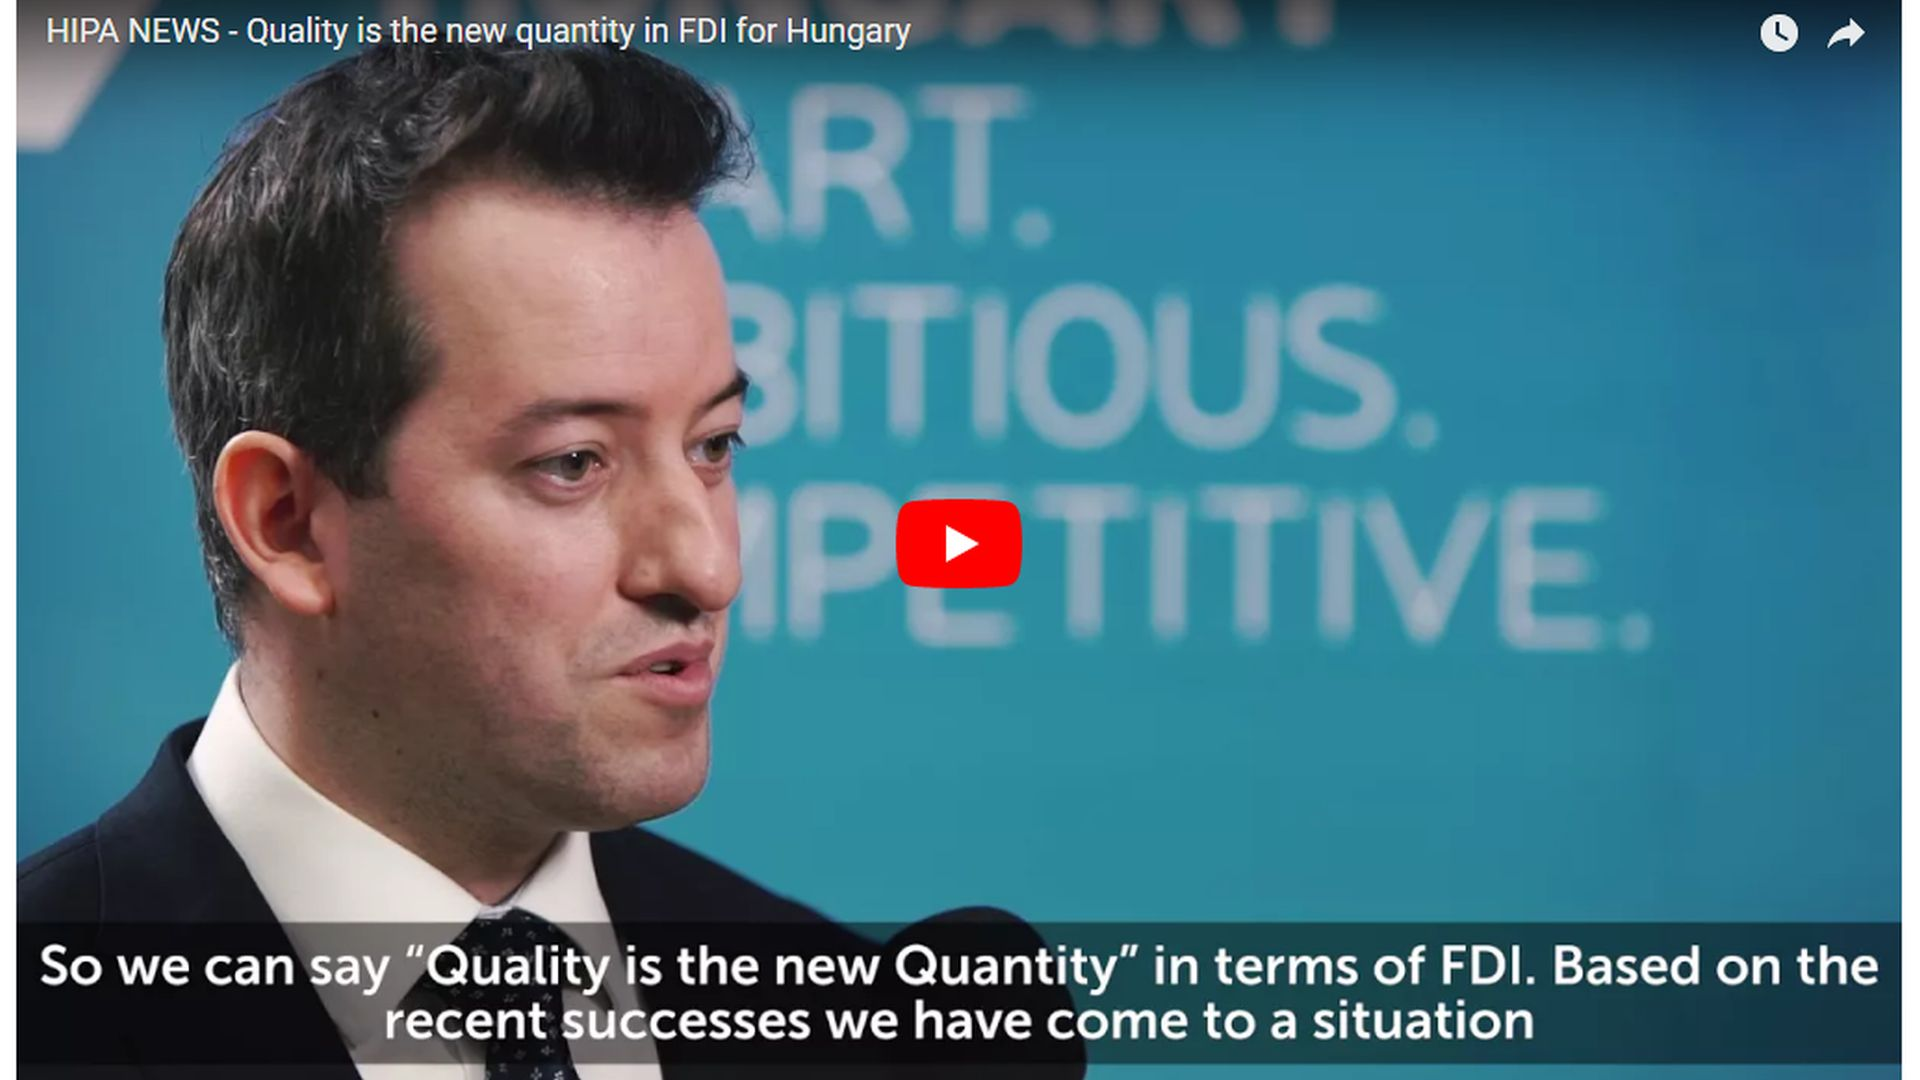 Quality is the new quantity in FDI - VIDEO